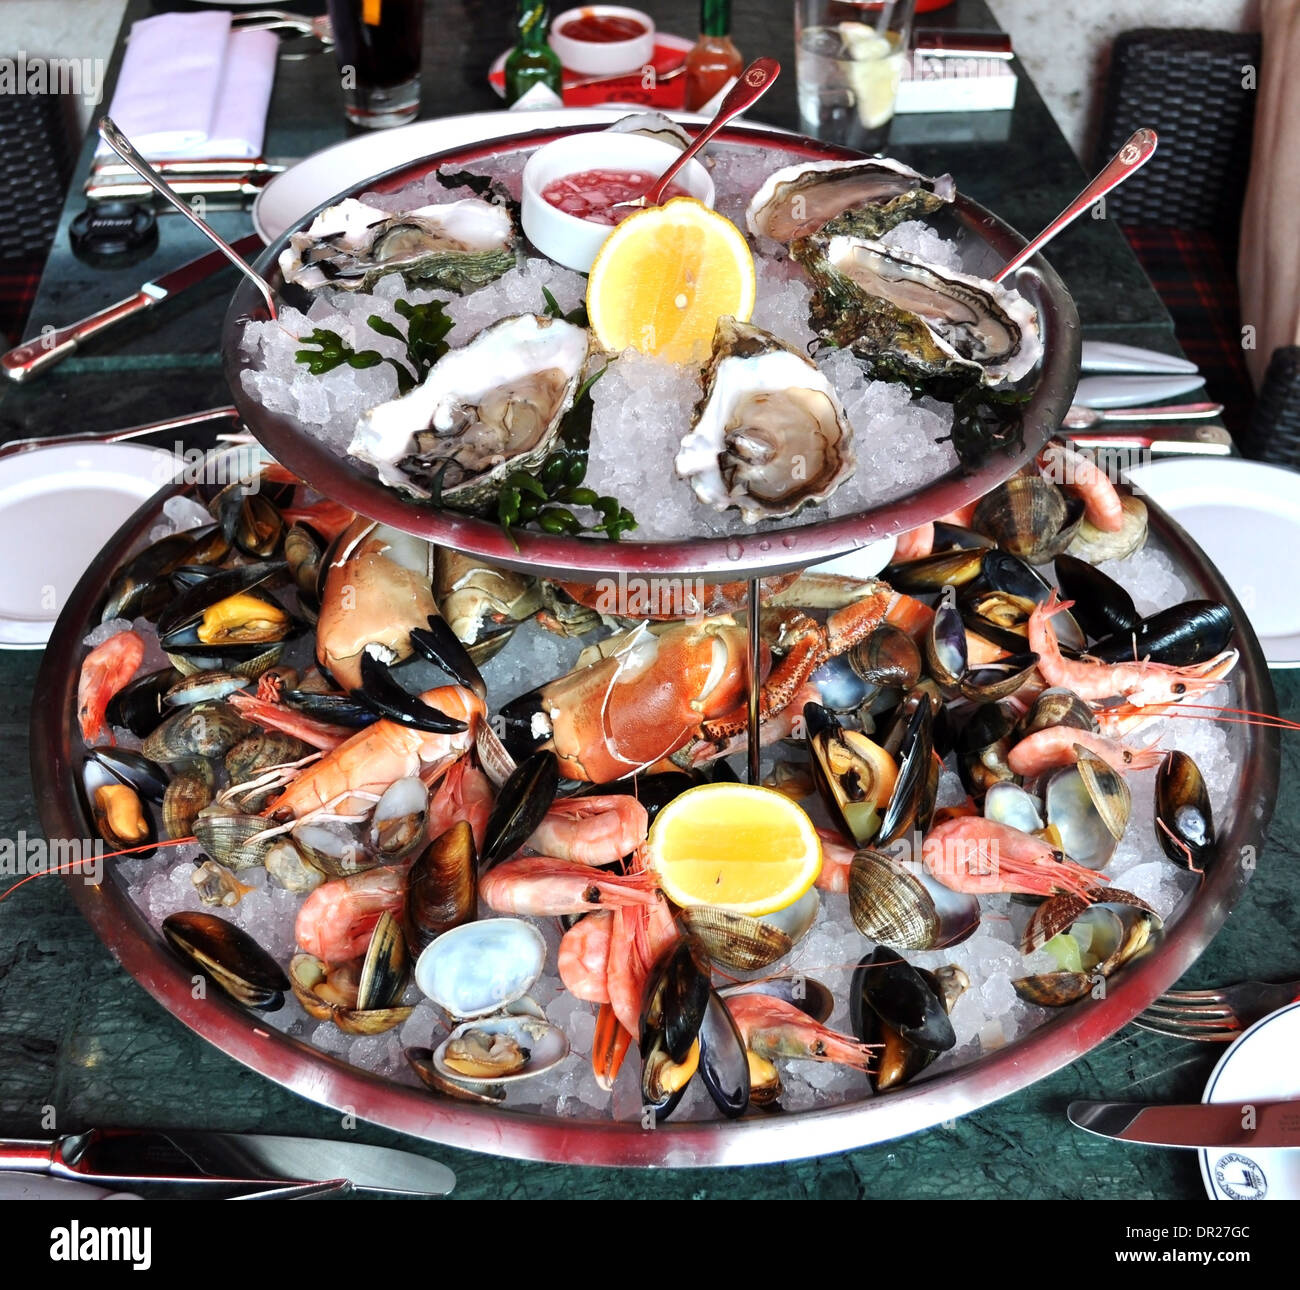 plateau de fruits de mer sea food platter at a london restaurant stock photo 65818044 alamy. Black Bedroom Furniture Sets. Home Design Ideas